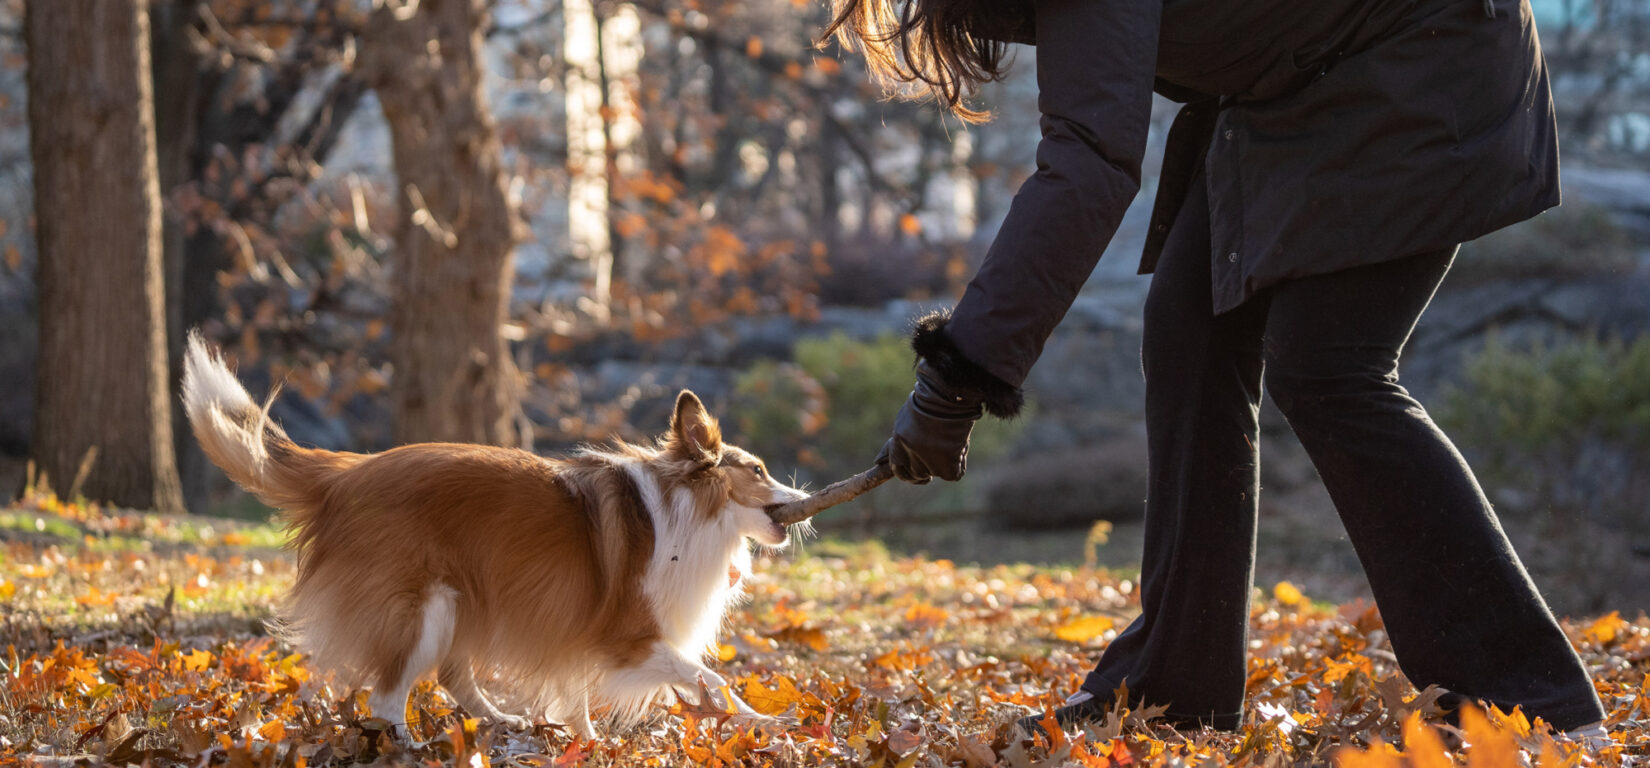 A dog wrestles its master for a stick on an autumn day in the Park